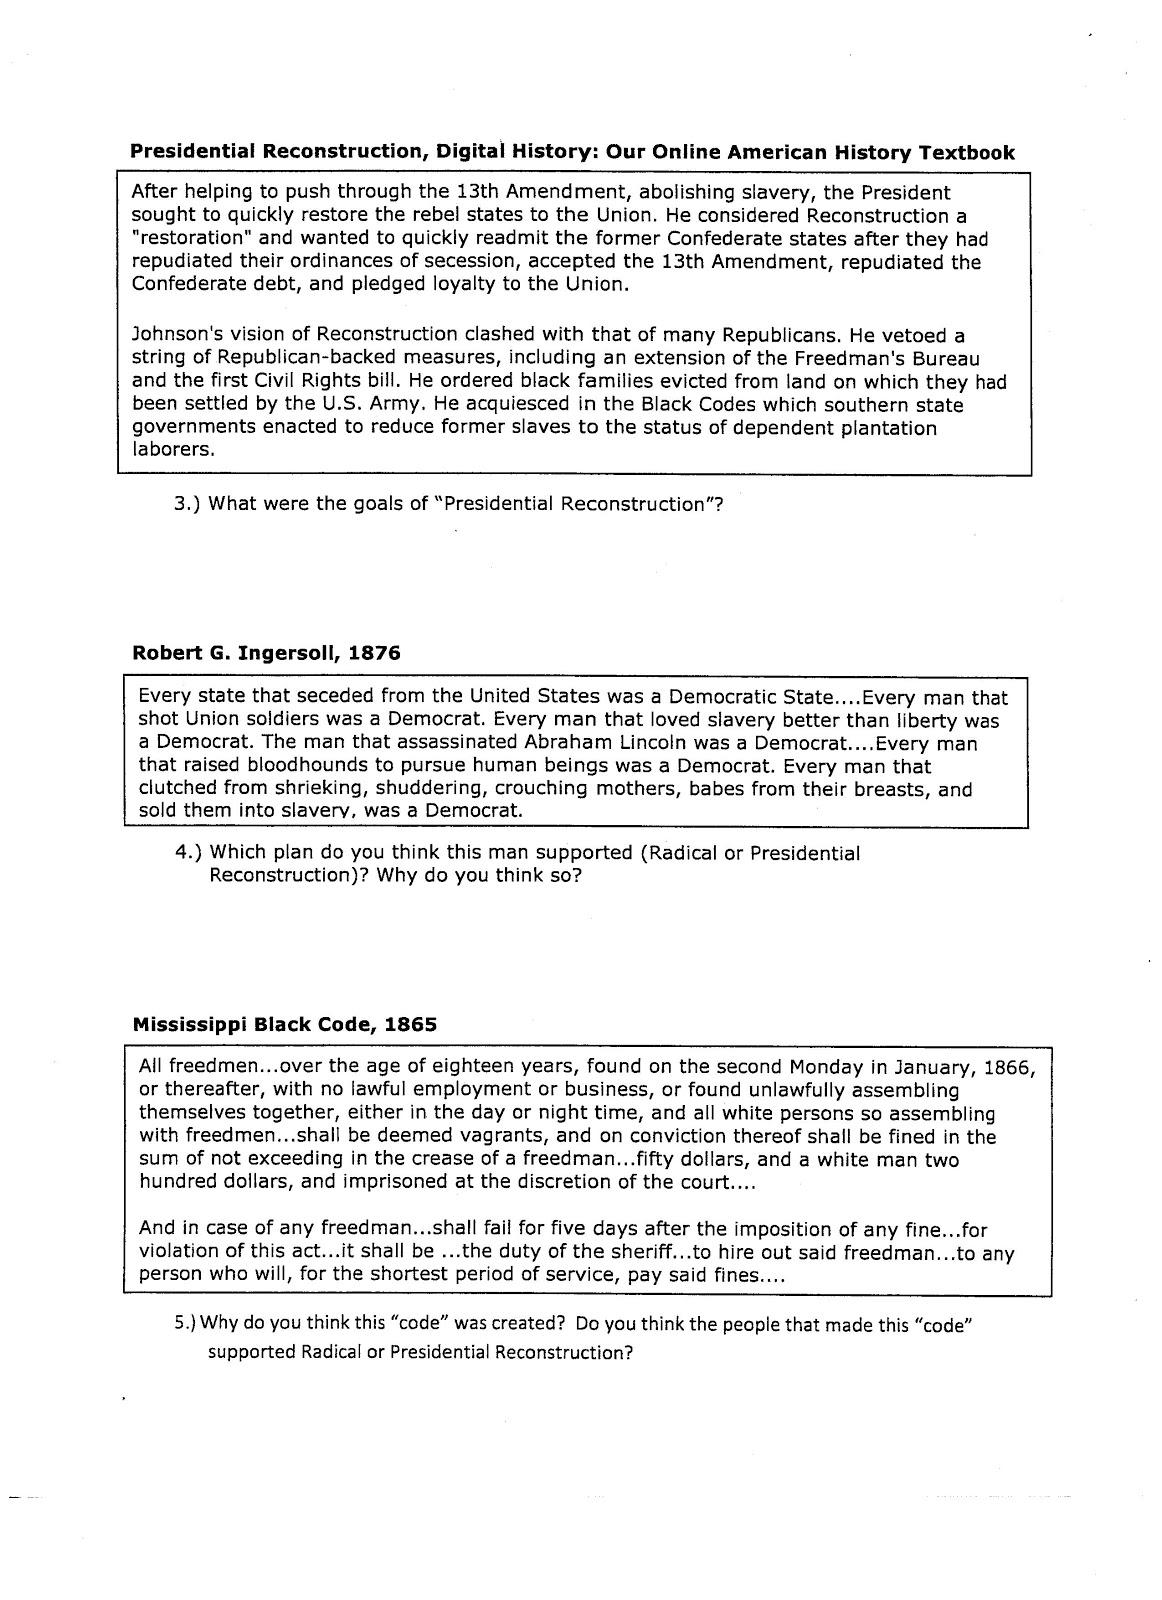 world war dbq essay answers college paper writing service world war 1 dbq essay answers